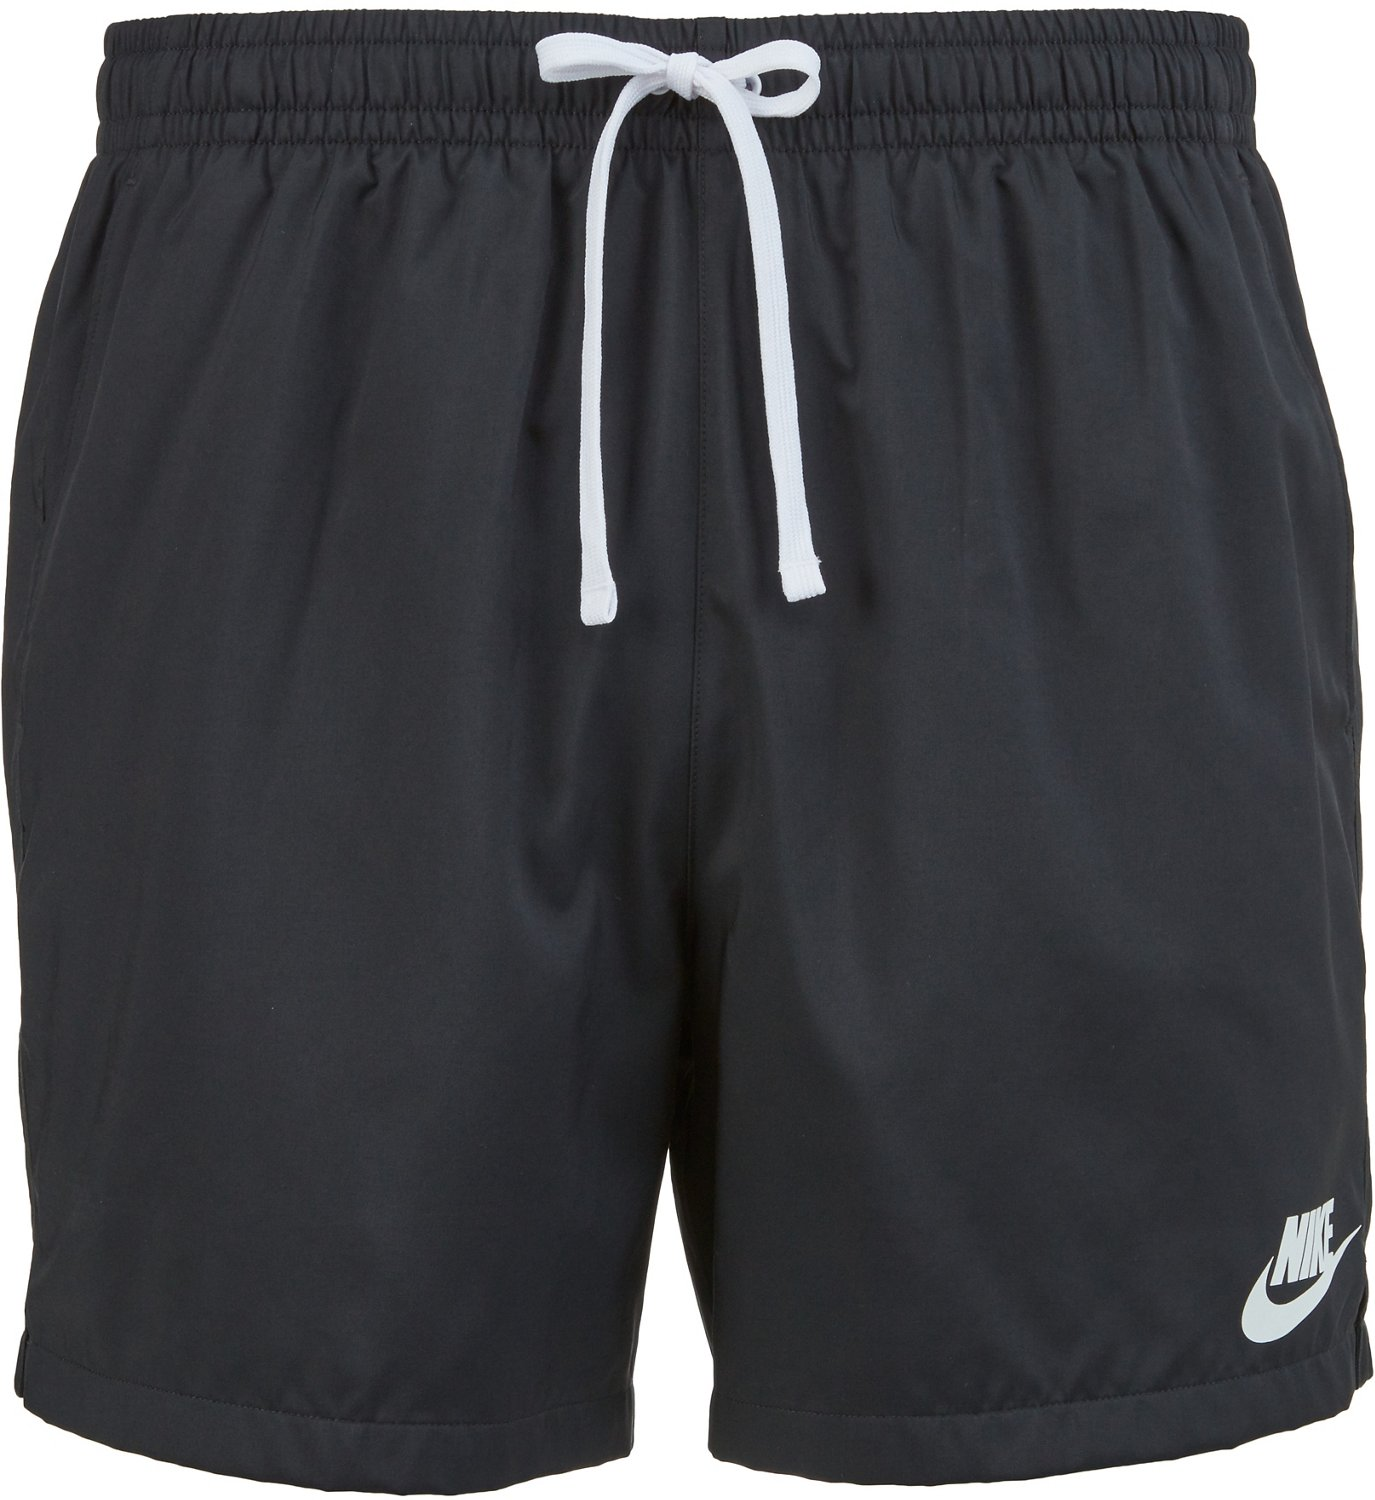 Display product reviews for Nike Men's Sportswear Short